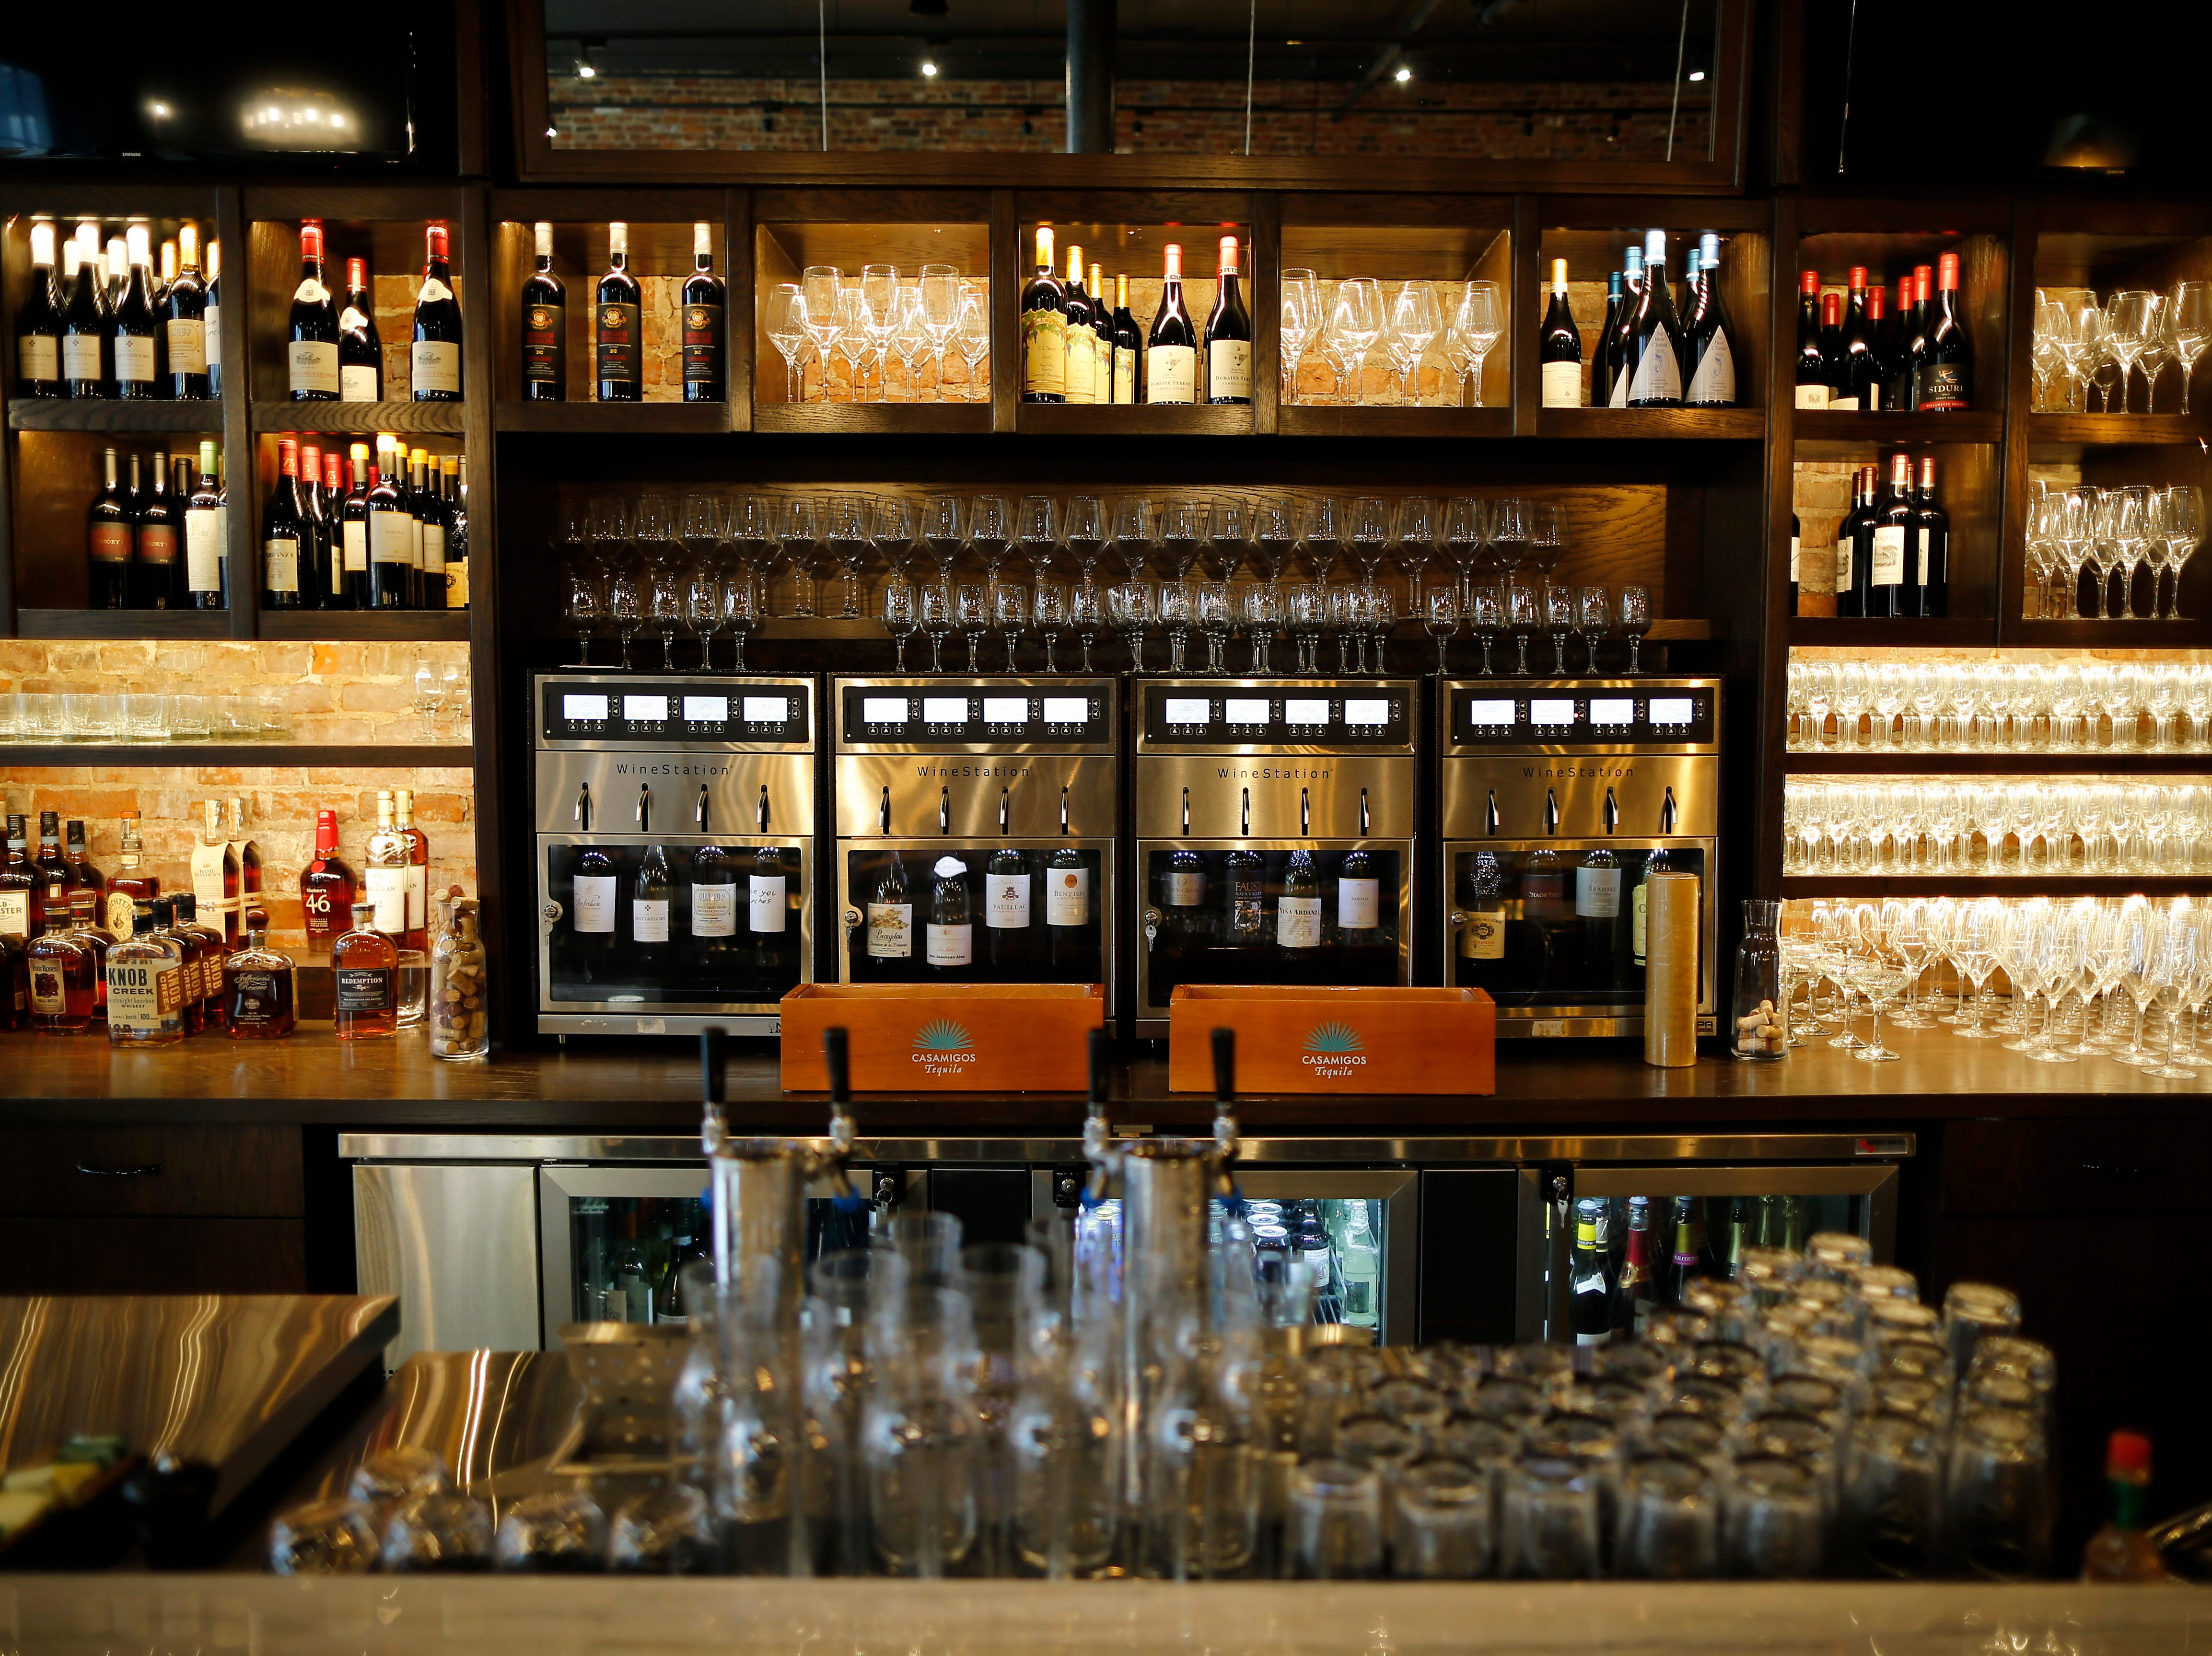 The bar and extensive wine selection at Louvino in the Over-the-Rhine neighborhood of Cincinnati on Thursday, Oct. 4, 2018.